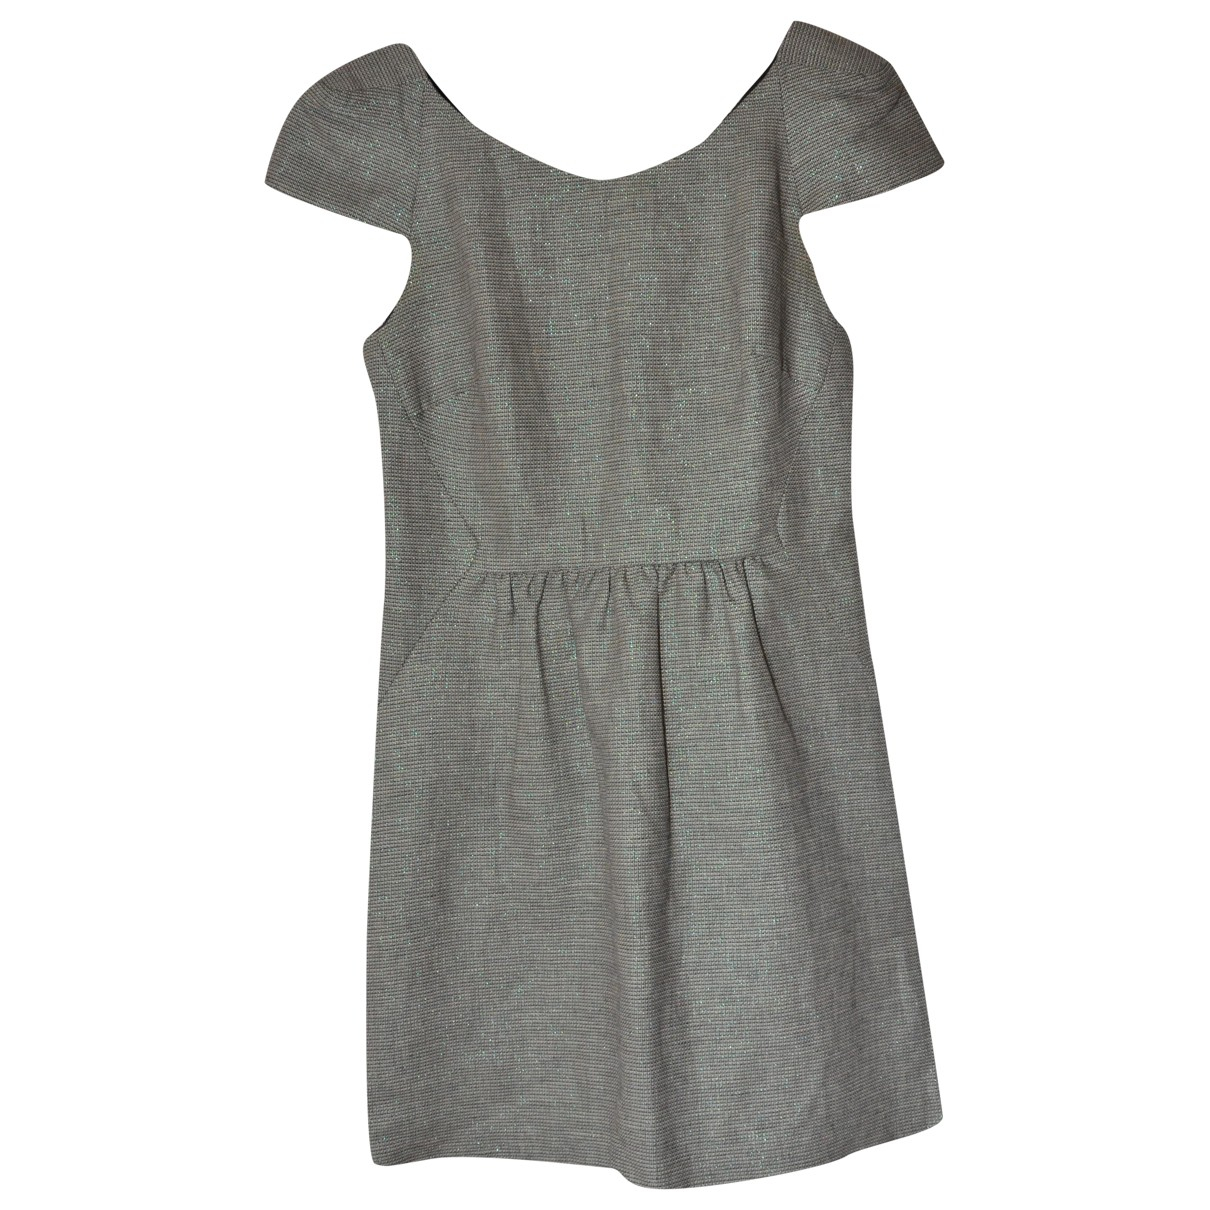 Ba&sh N Green Linen dress for Women 0 0-5